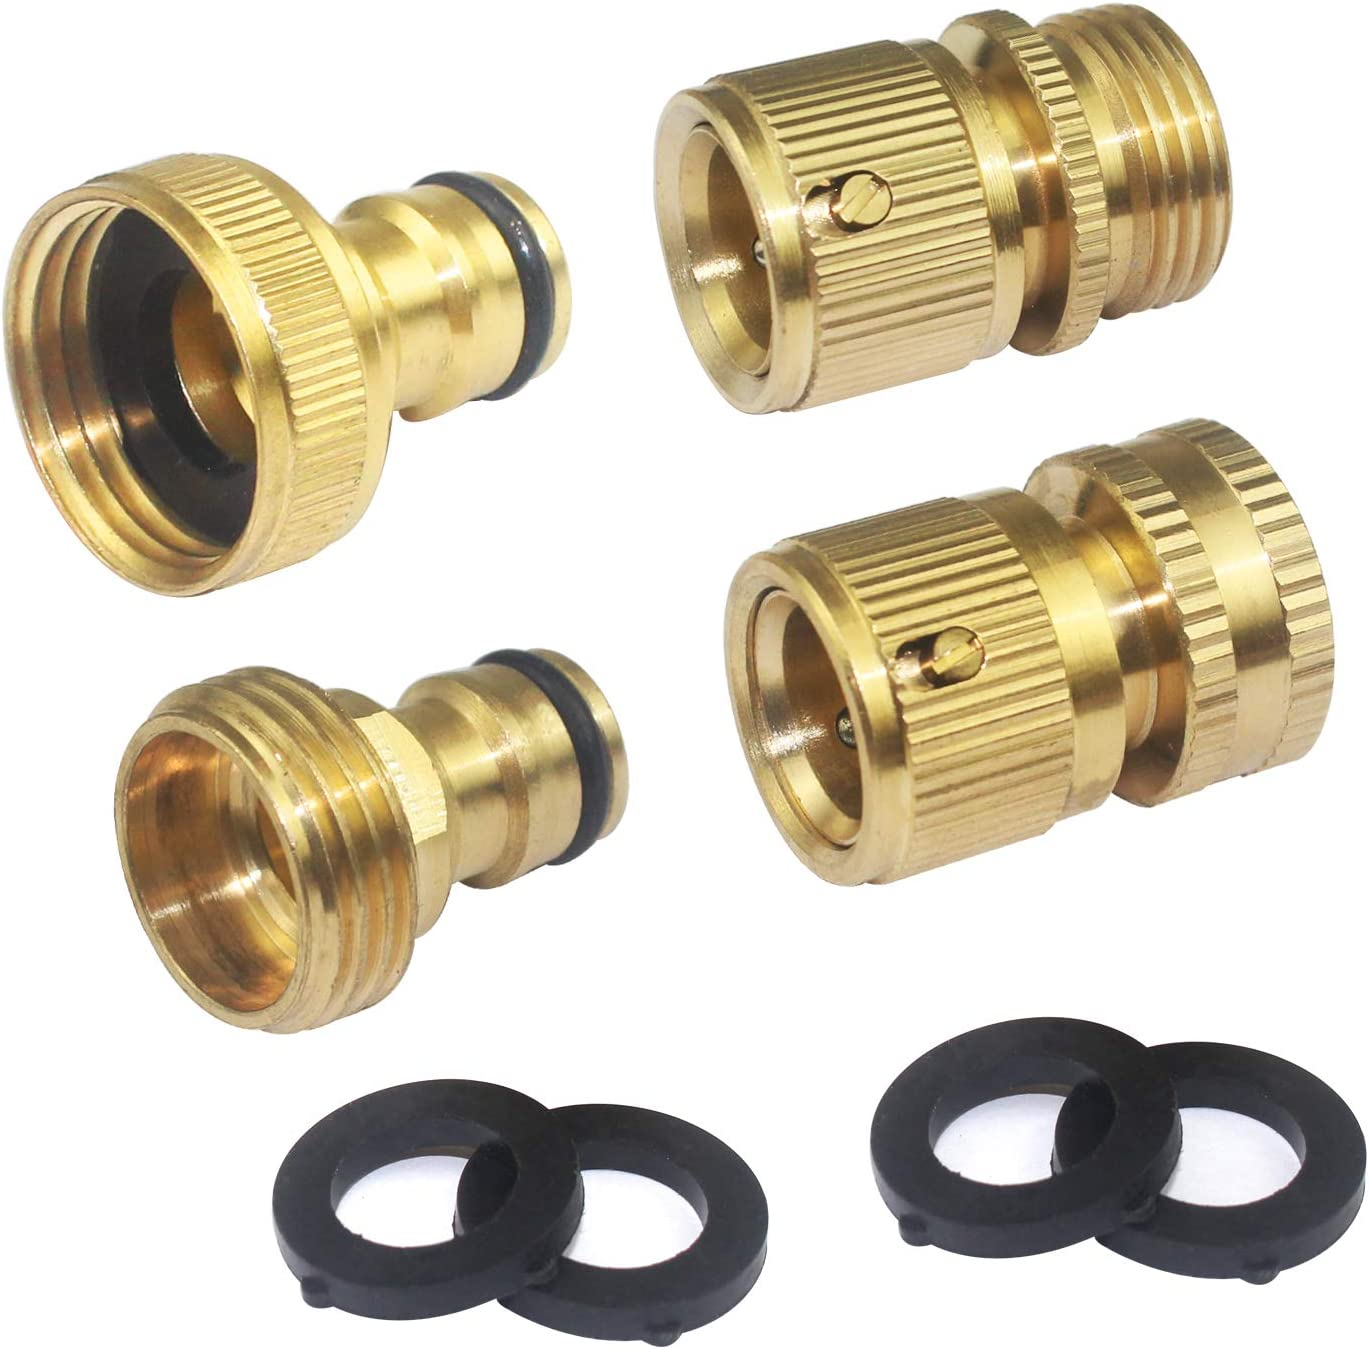 WeiMeet 4 Pieces Hose Connectors Garden Hose Quick Connectors 3/4 Inch Brass Female and Male Connectors Female and Male Nipples